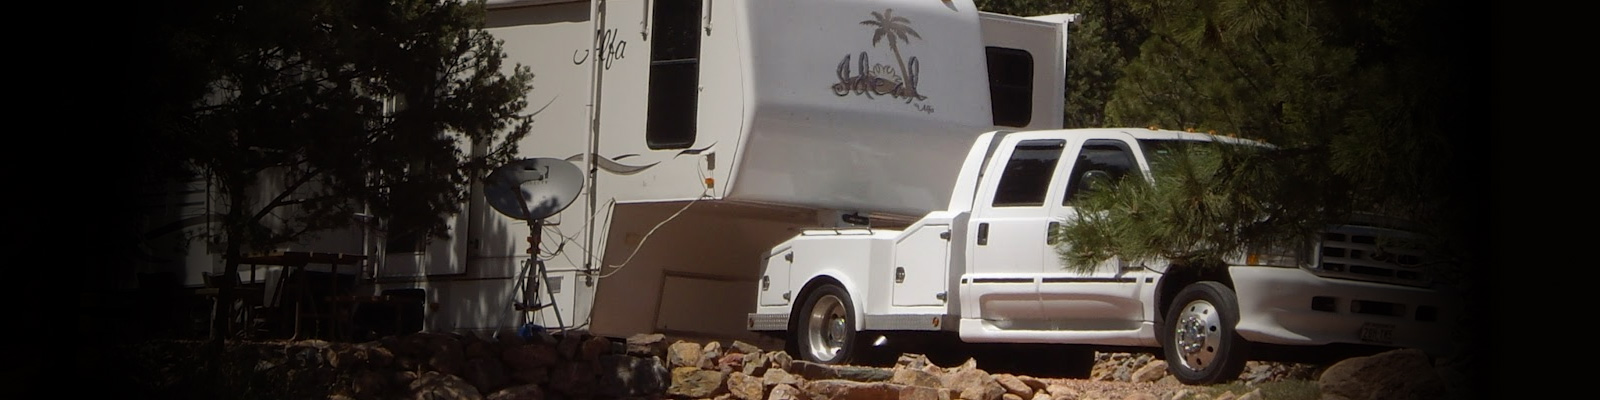 The Hottest RV Accessories